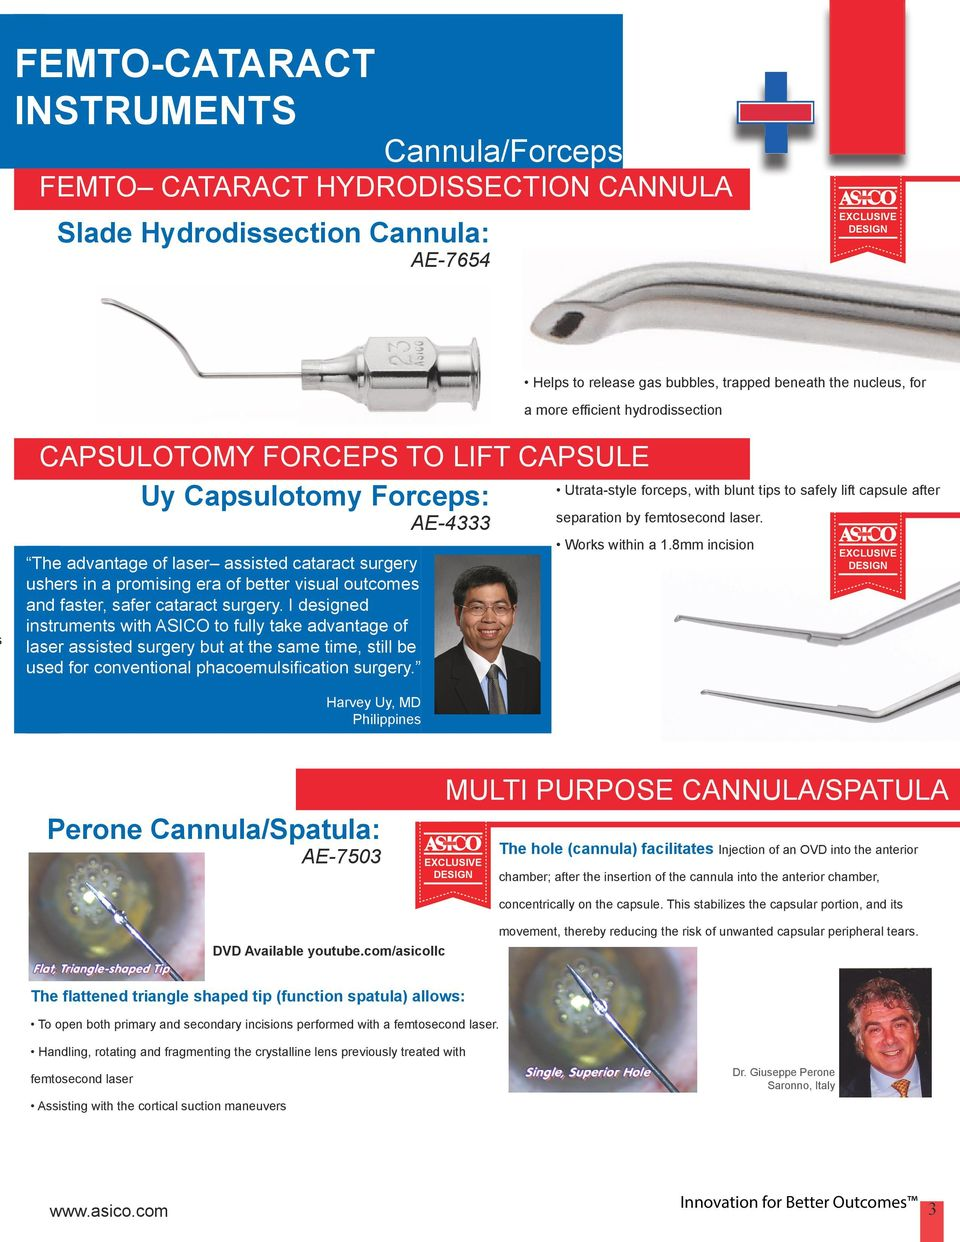 I designed instruments with ASICO to fully take advantage of laser assisted surgery but at the same time, still be used for conventional phacoemulsification surgery.